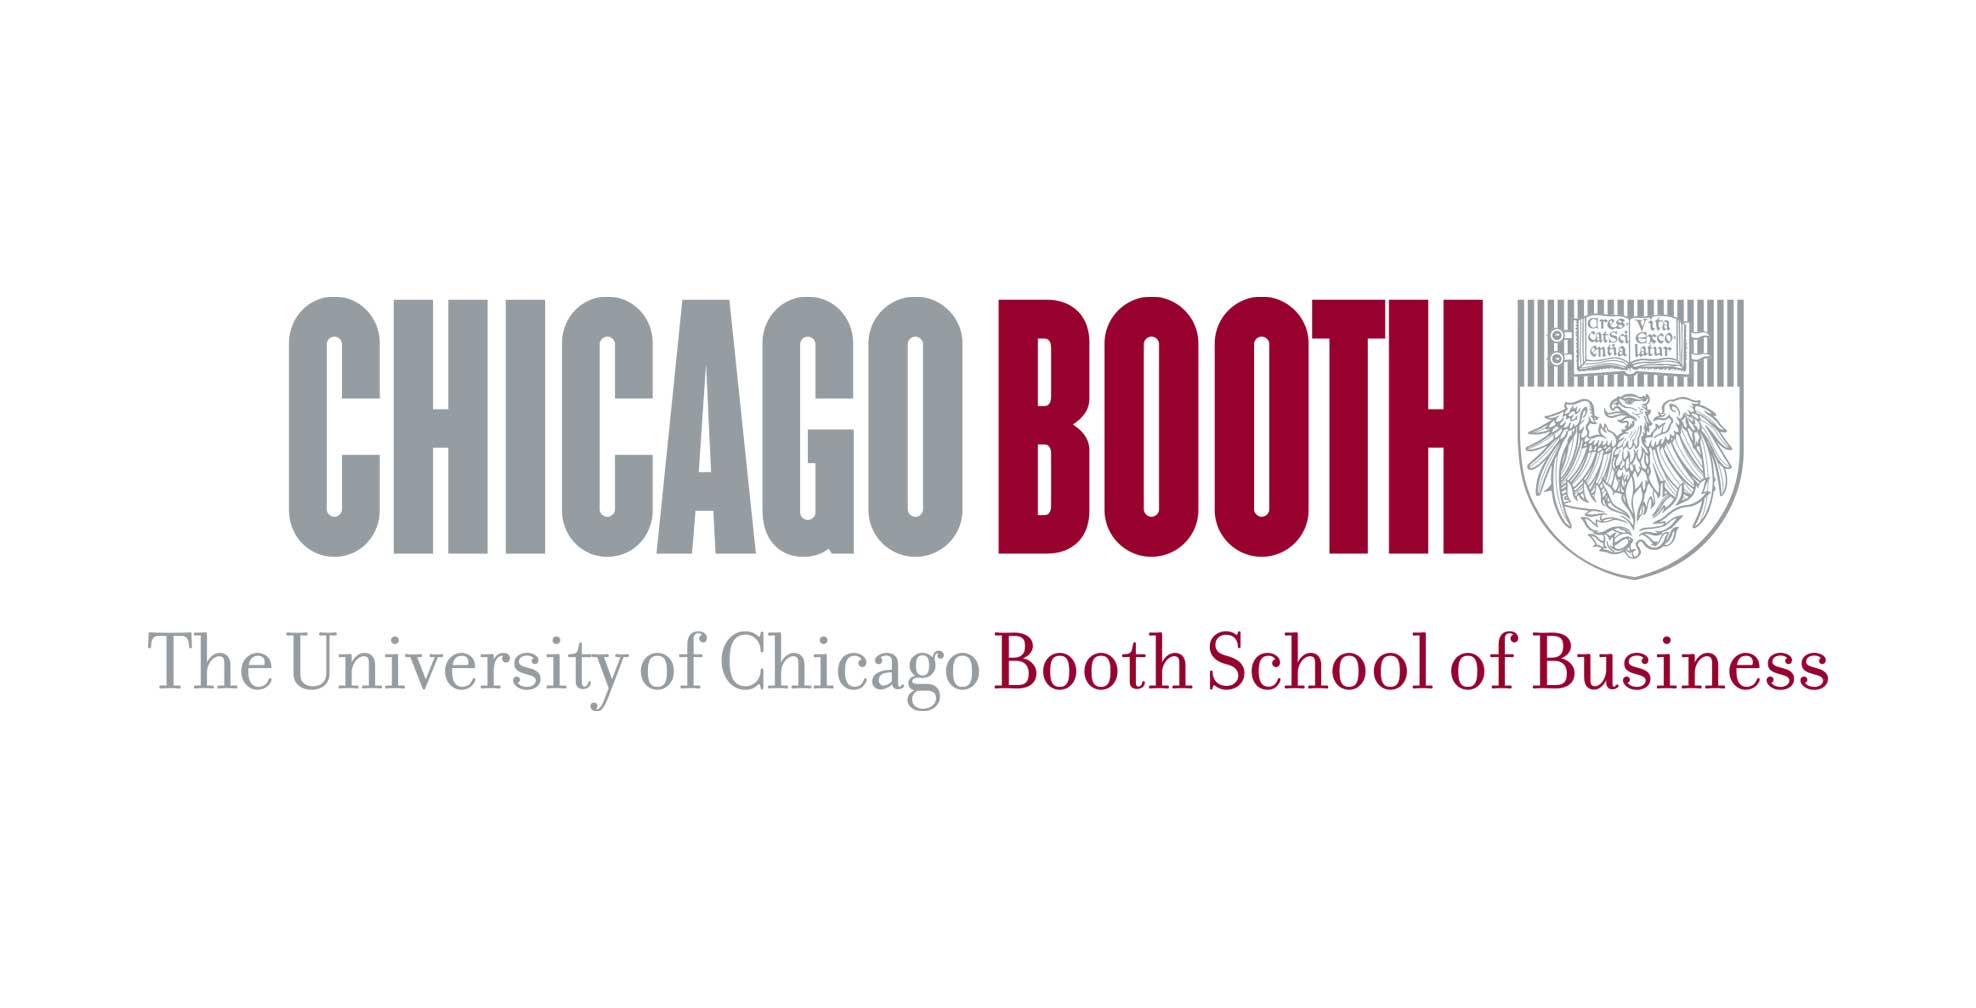 chicago-booth_logo.jpg